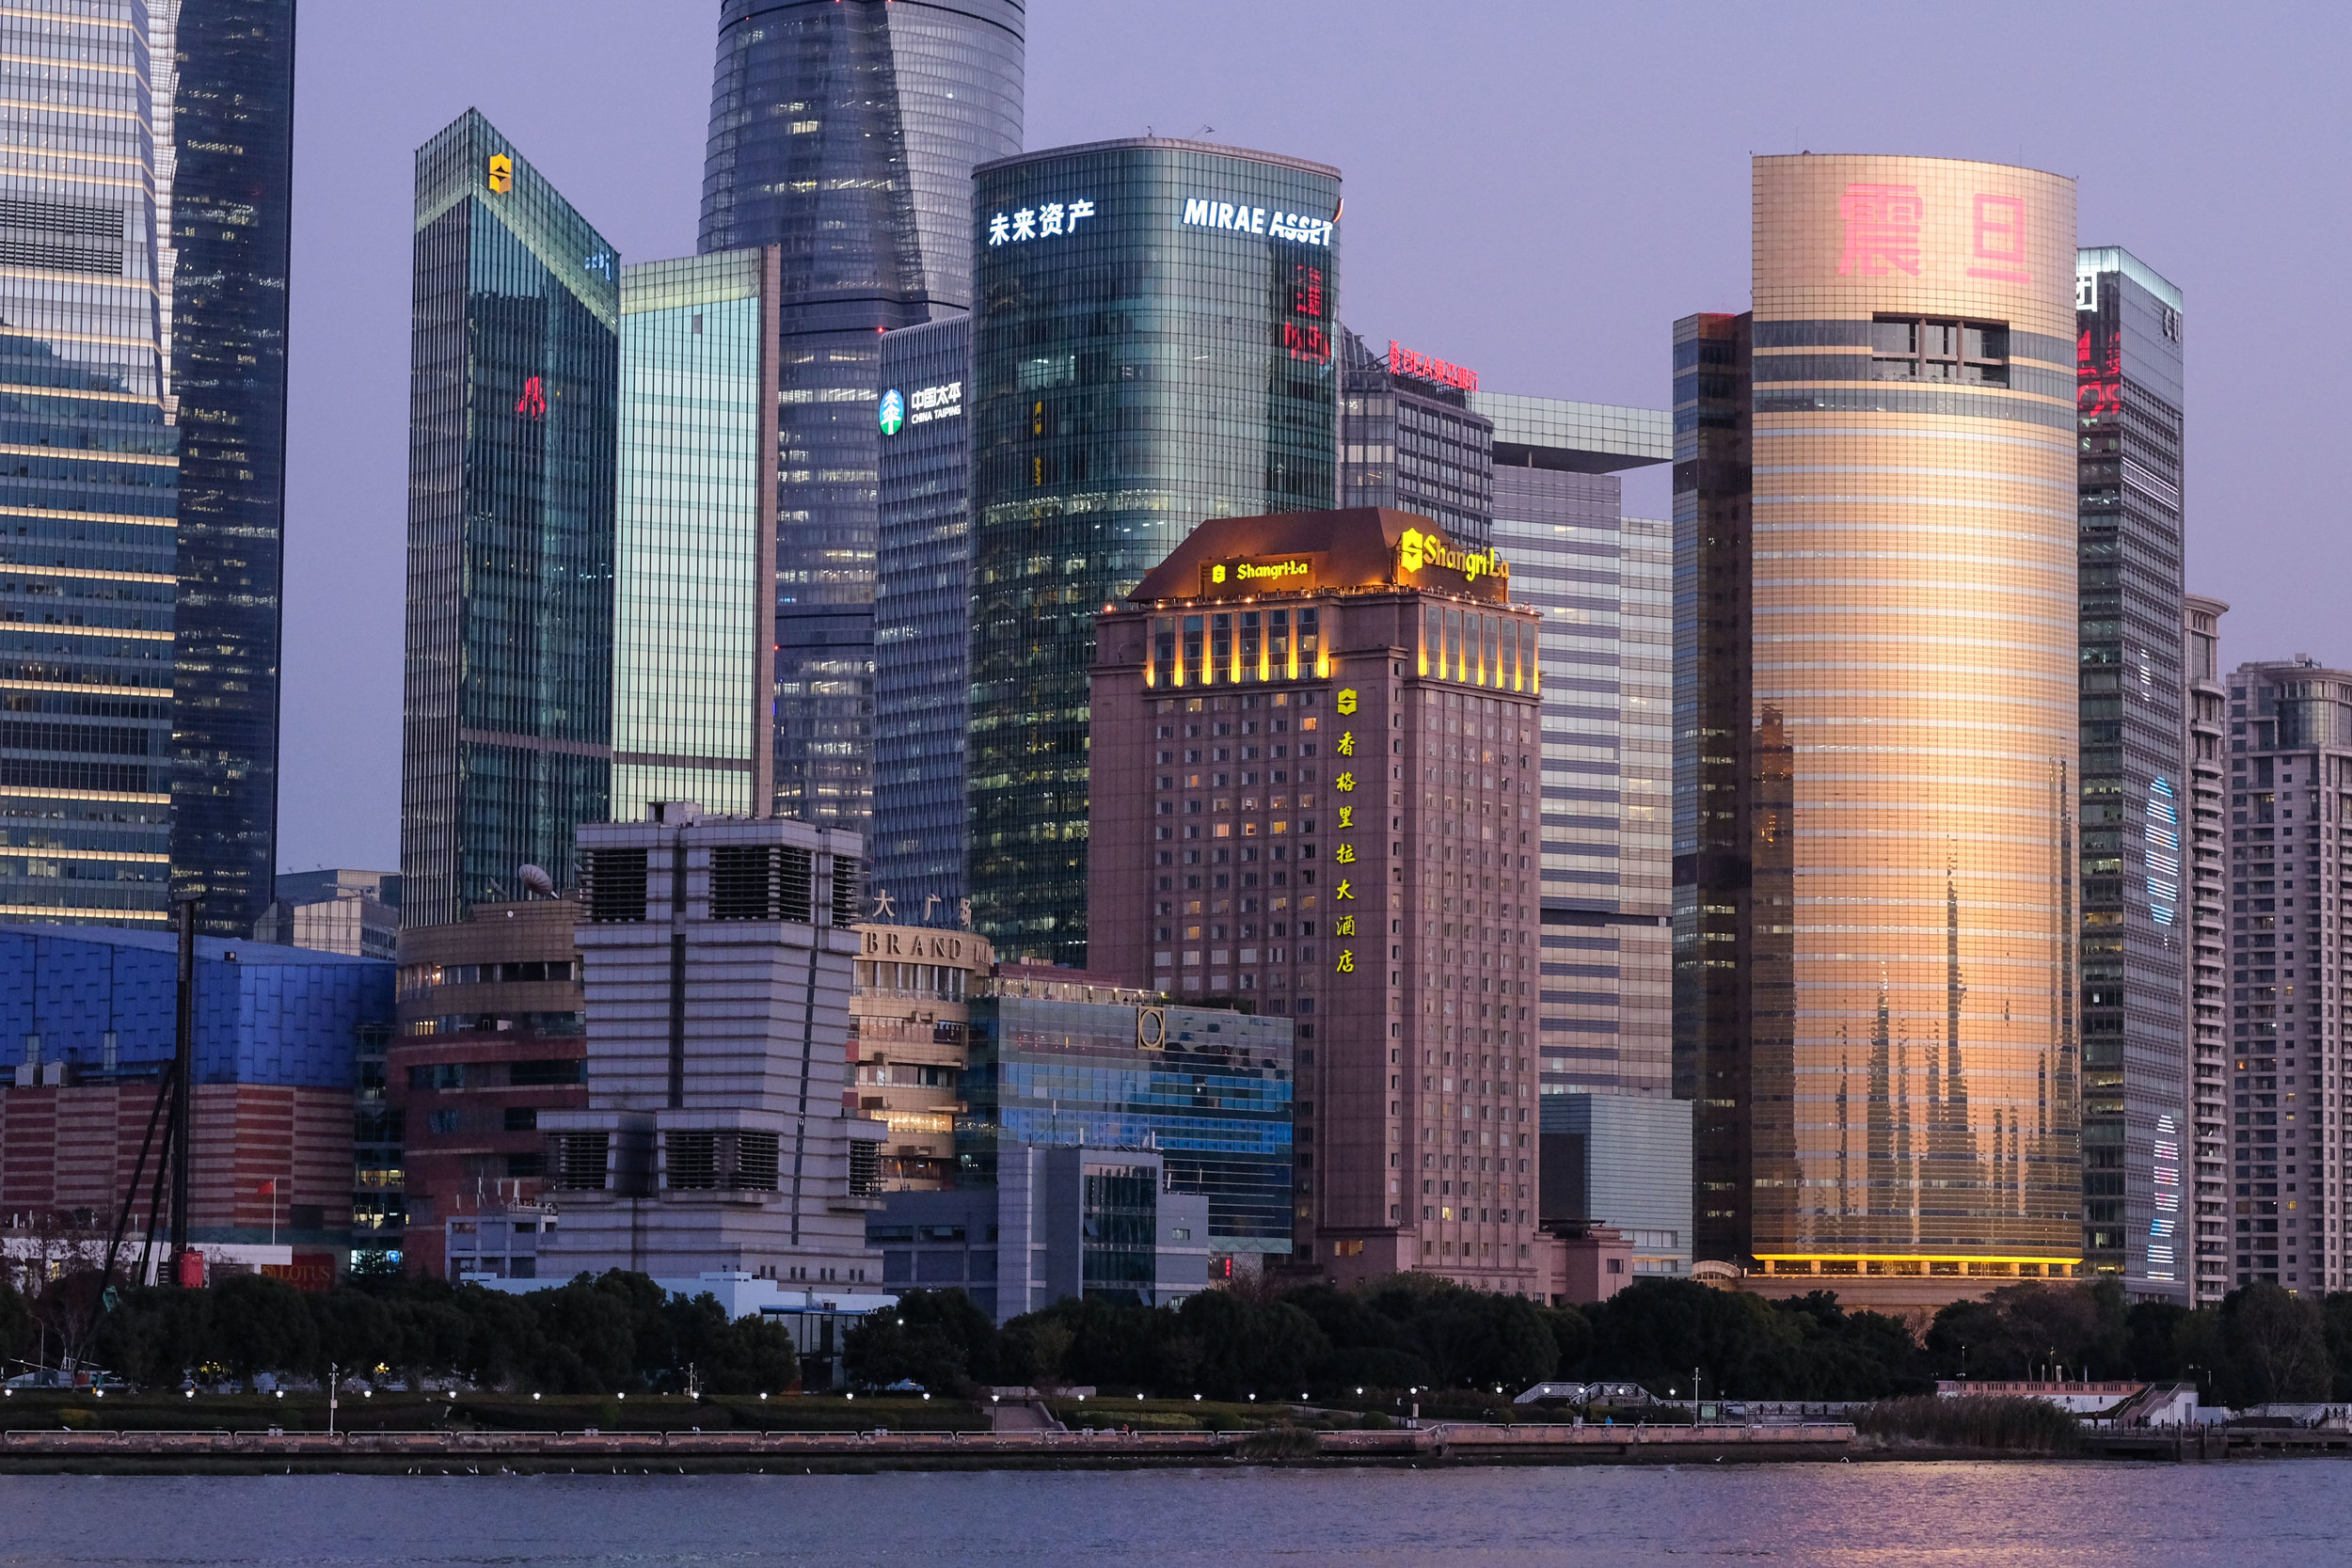 R&R Guide To Shanghai - January 5th, 2018